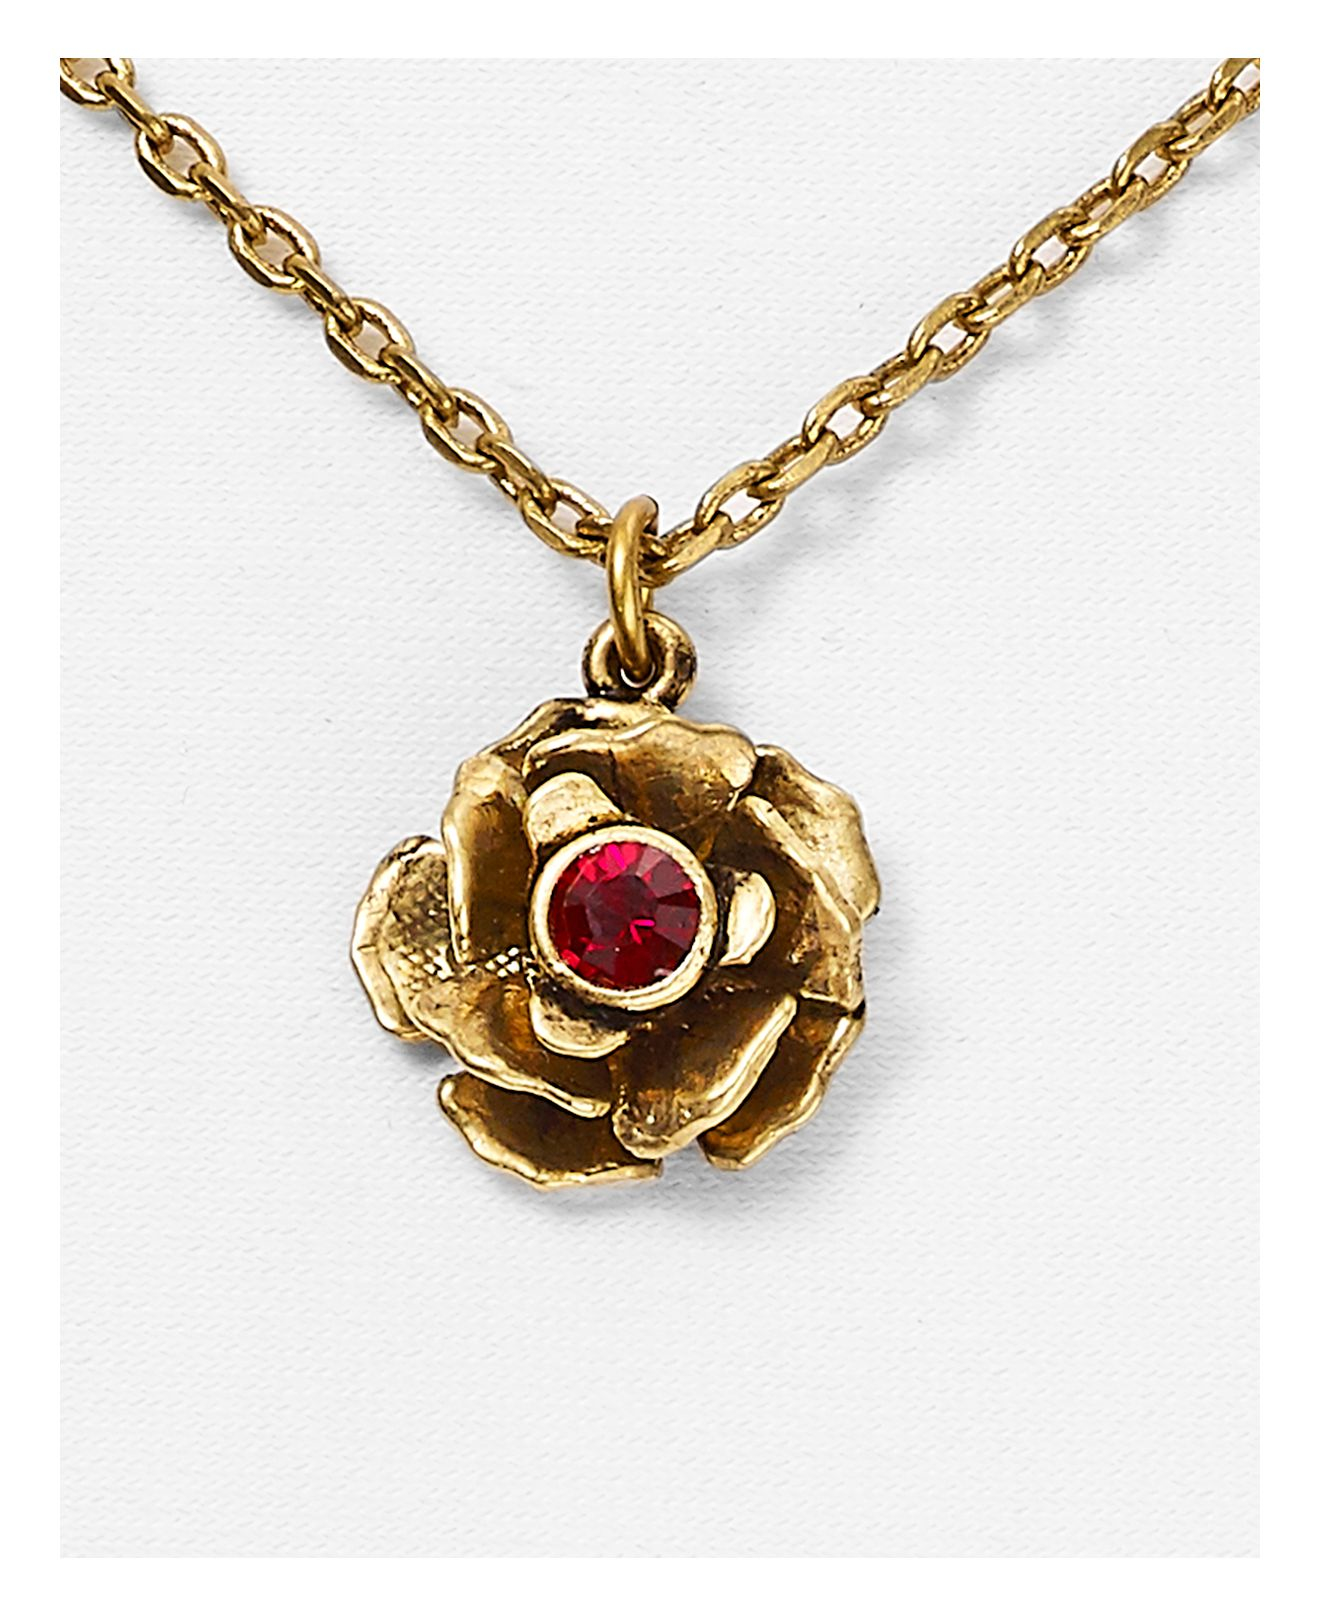 Marc Jacobs Small Flower Necklace in Red/Antique Gold (Metallic)